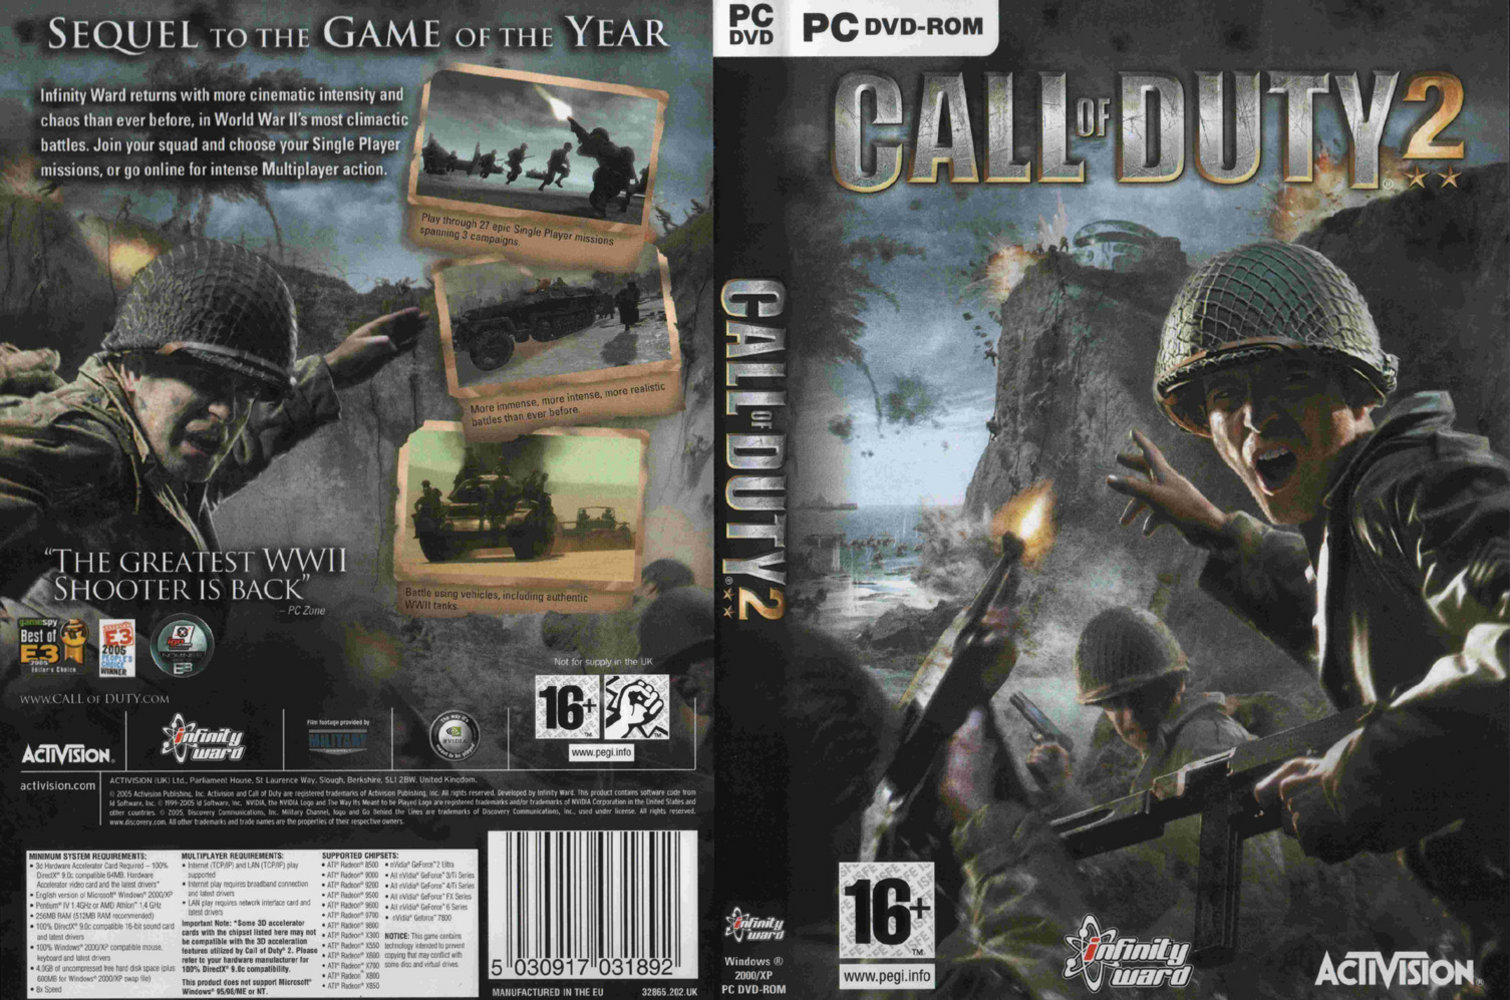 call of duty 4 download free pc